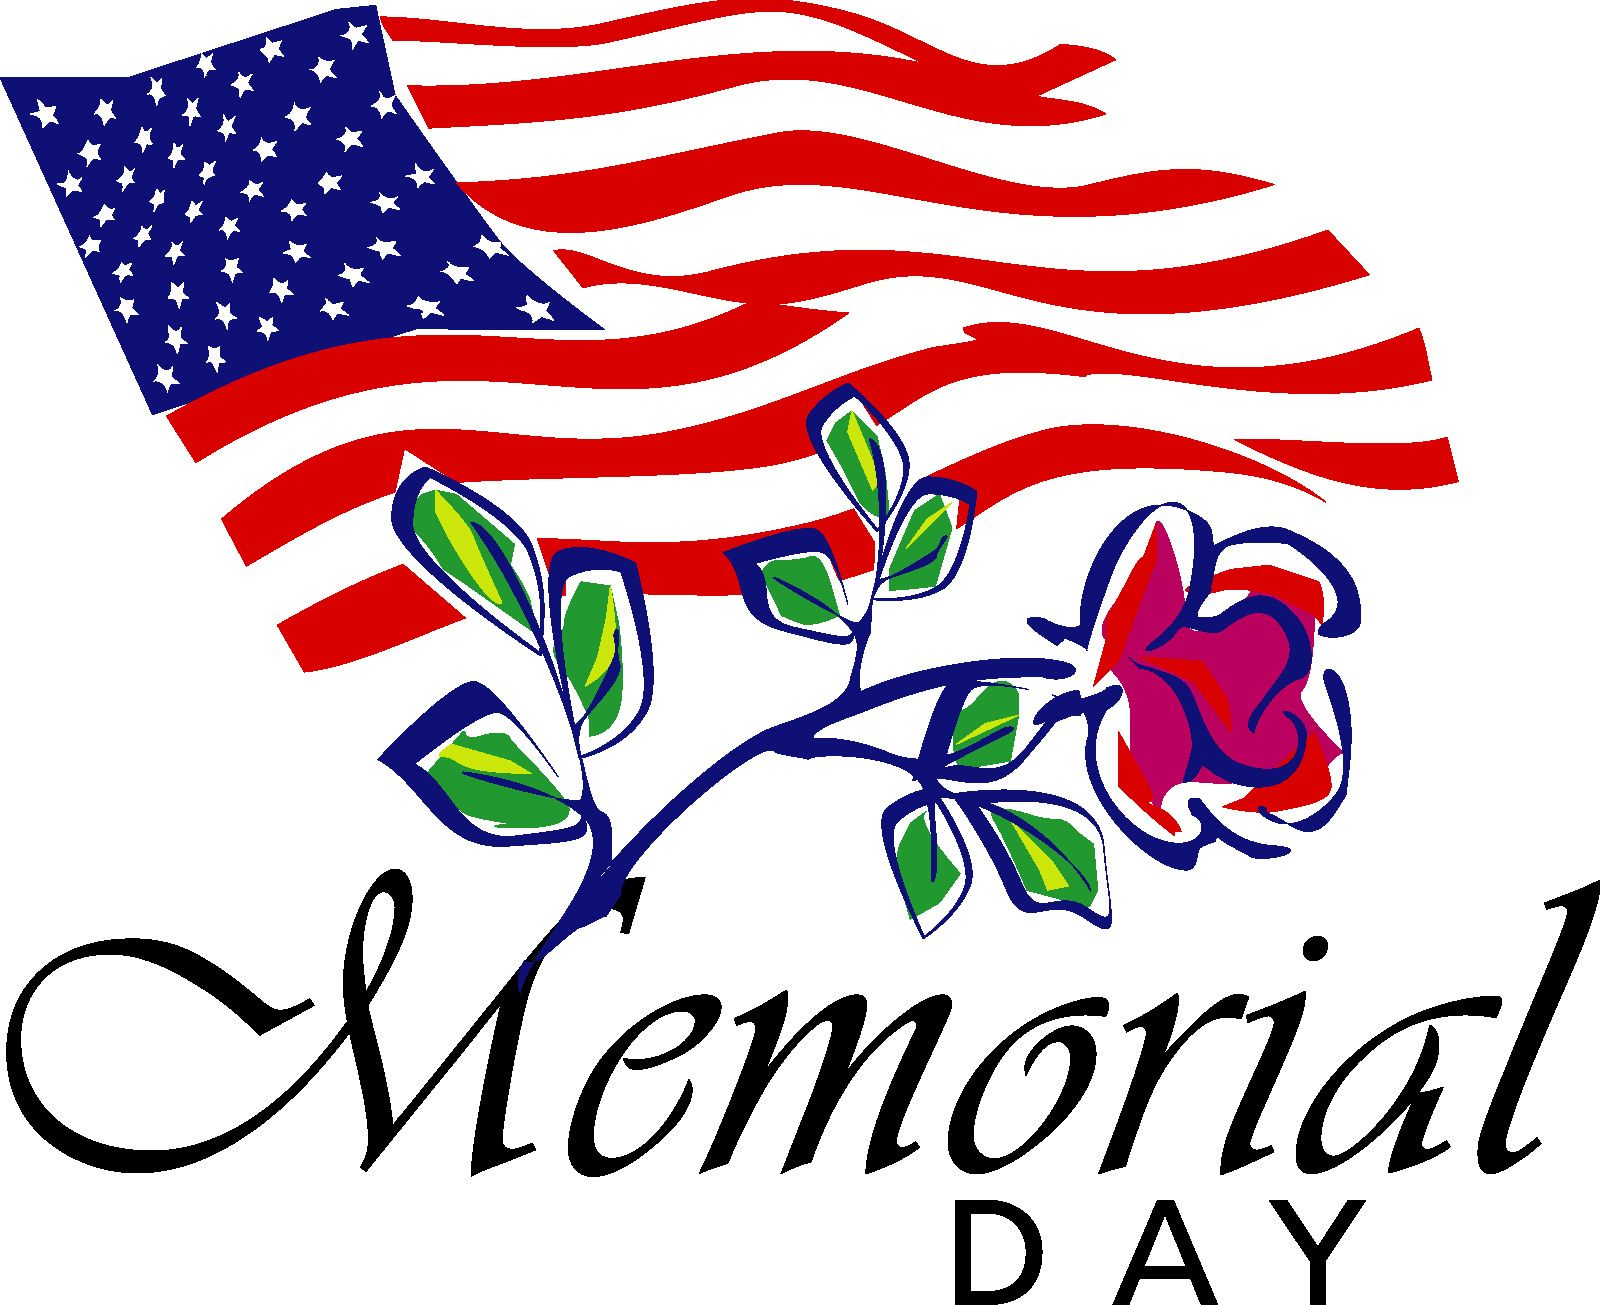 memorial day clip art free large images memorial day pinterest rh pinterest com free memorial day clipart images free memorial day clipart images